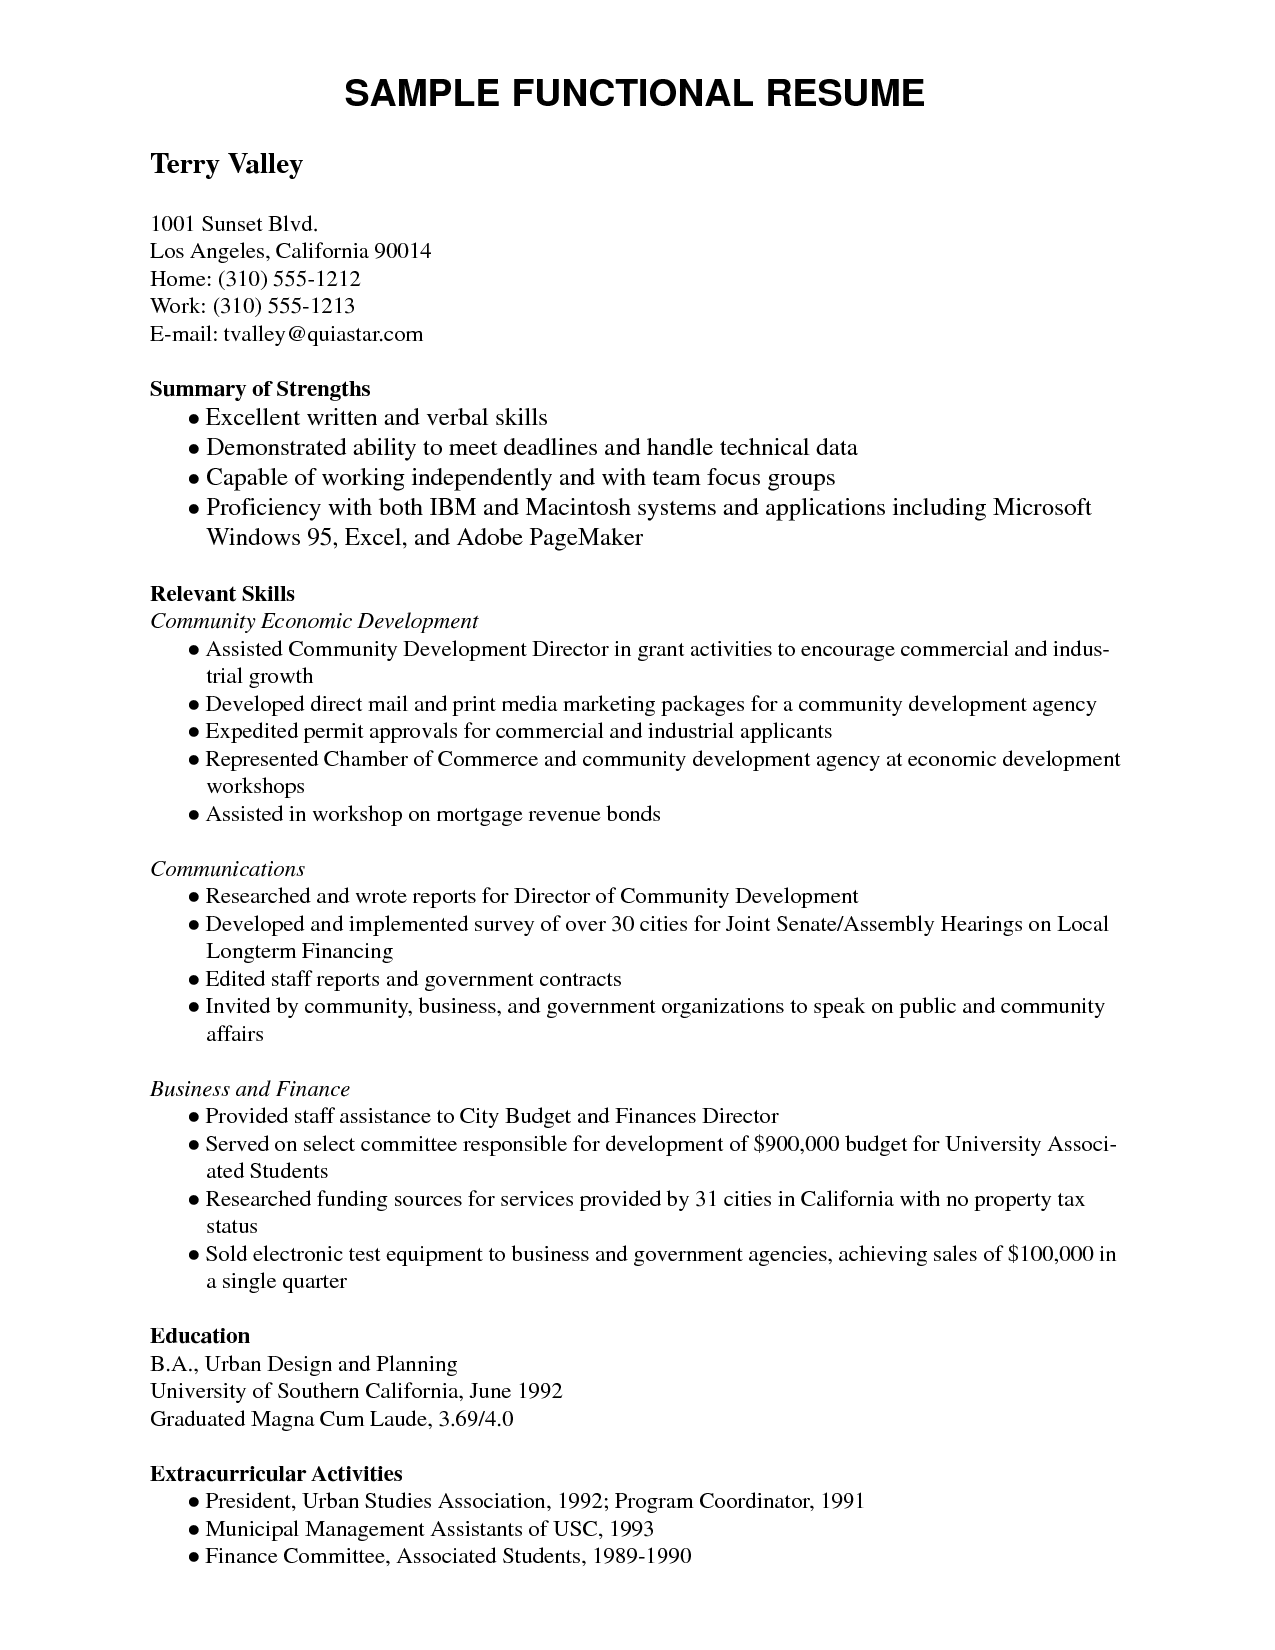 Image Result For Functional Resume Example Pdf  Resumes